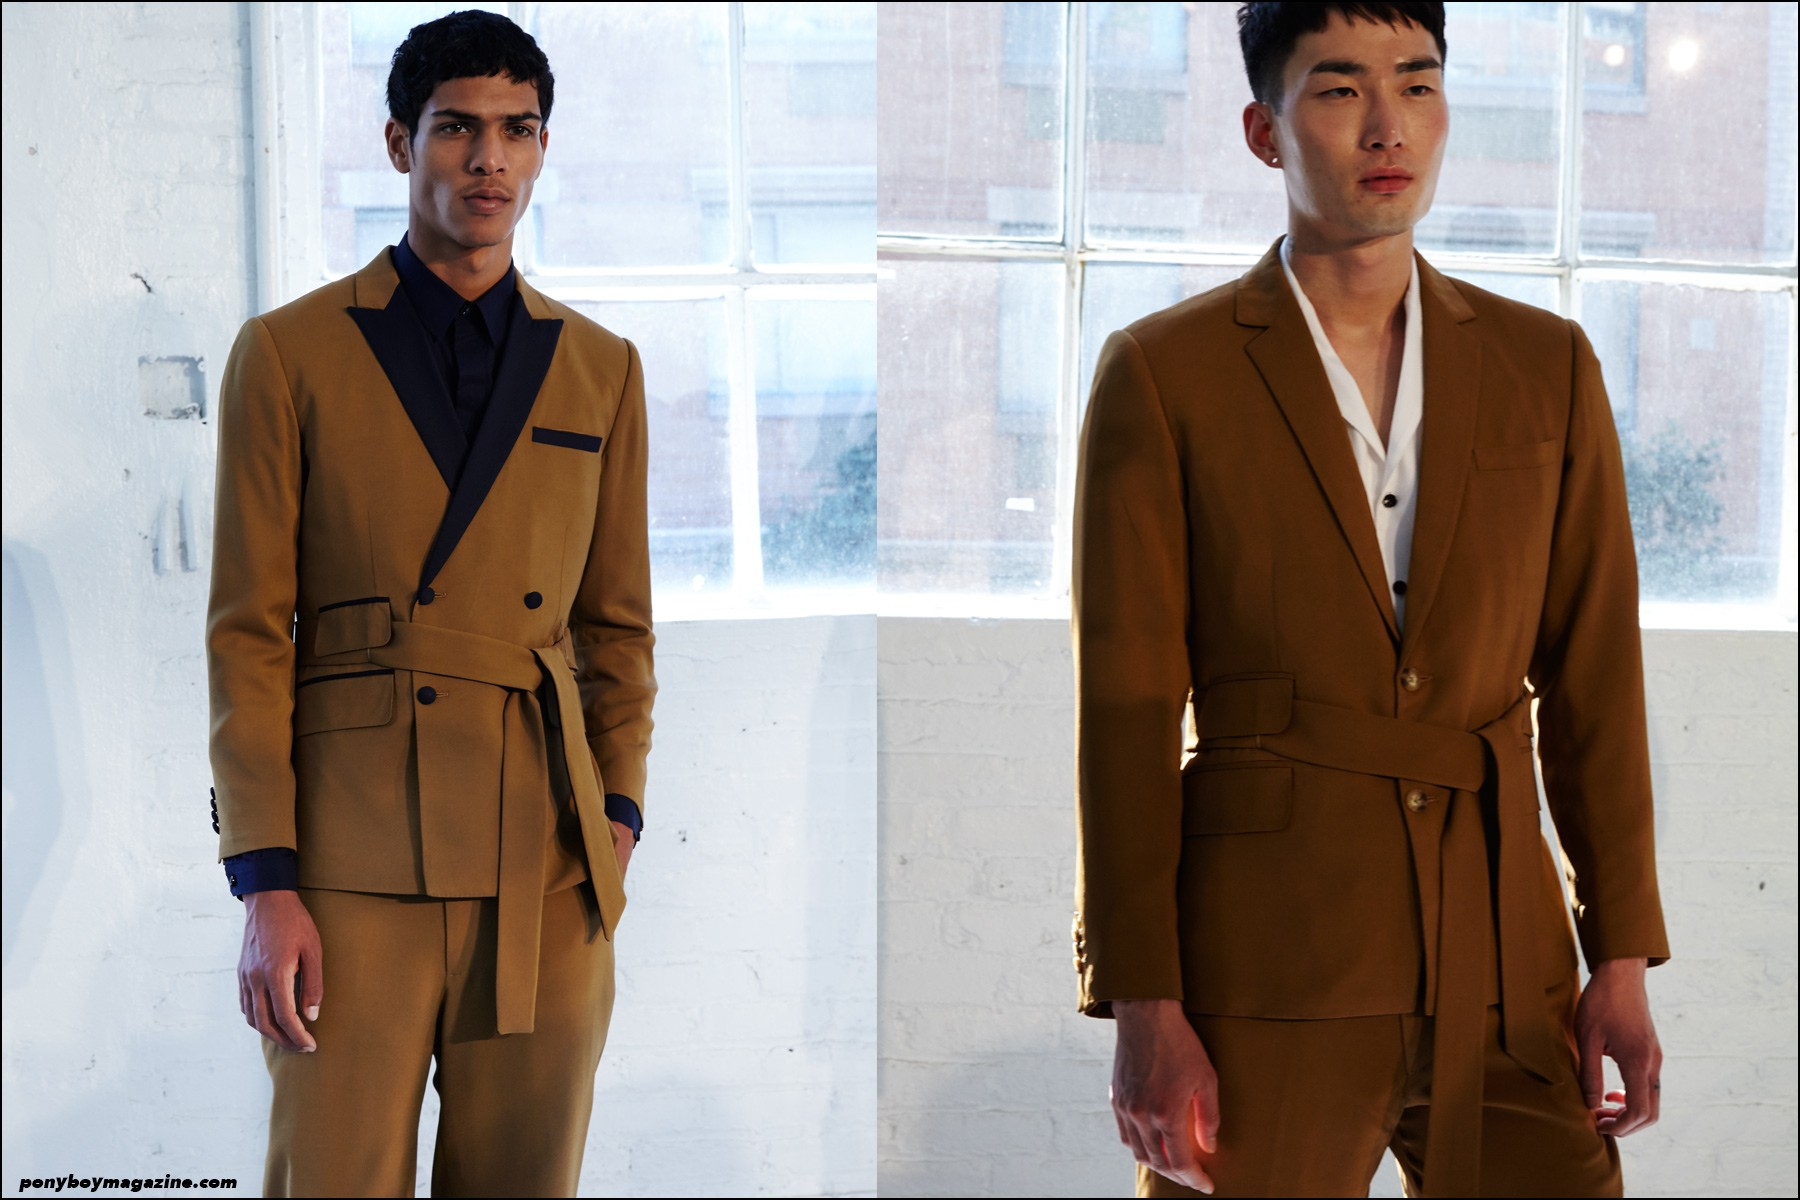 Models Geron McKinley and Noma Han photographed backstage at the Carlos Campos S/S 2016 menswear presentation at Industria Studios New York. Photography by Alexander Thompson for Ponyboy magazine NY.